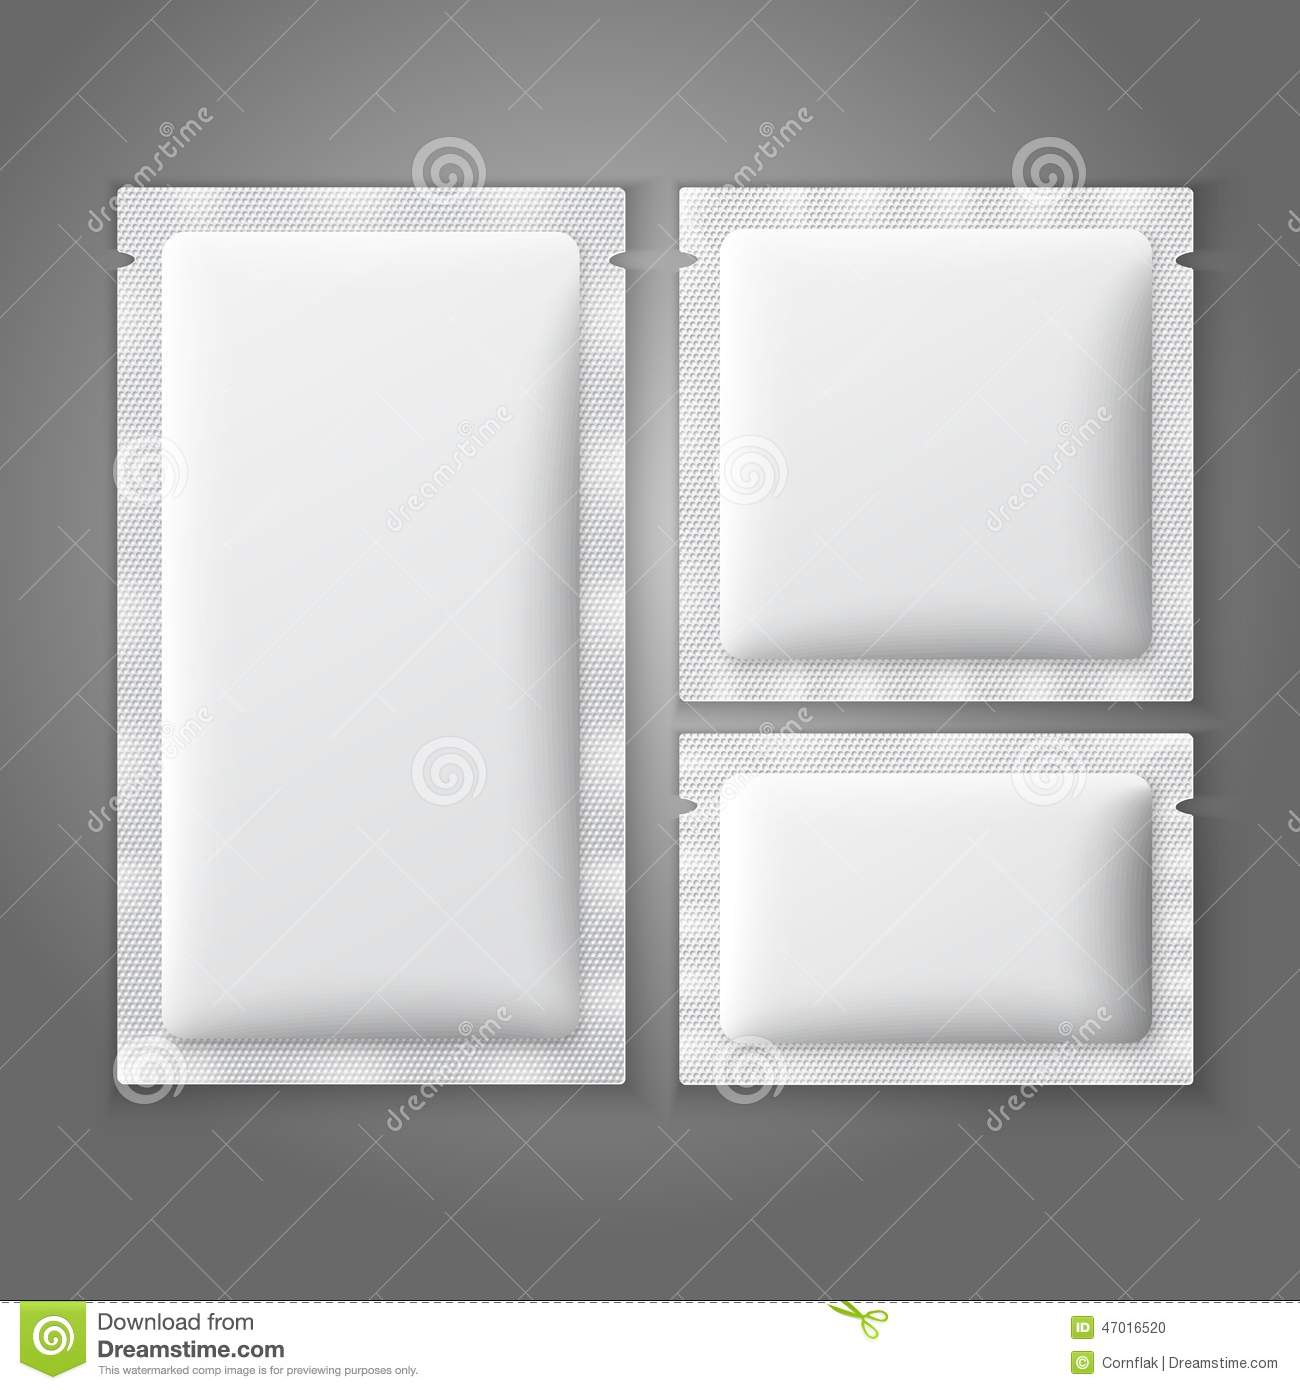 Blank White Plastic Sachets For Coffee Sugar Stock